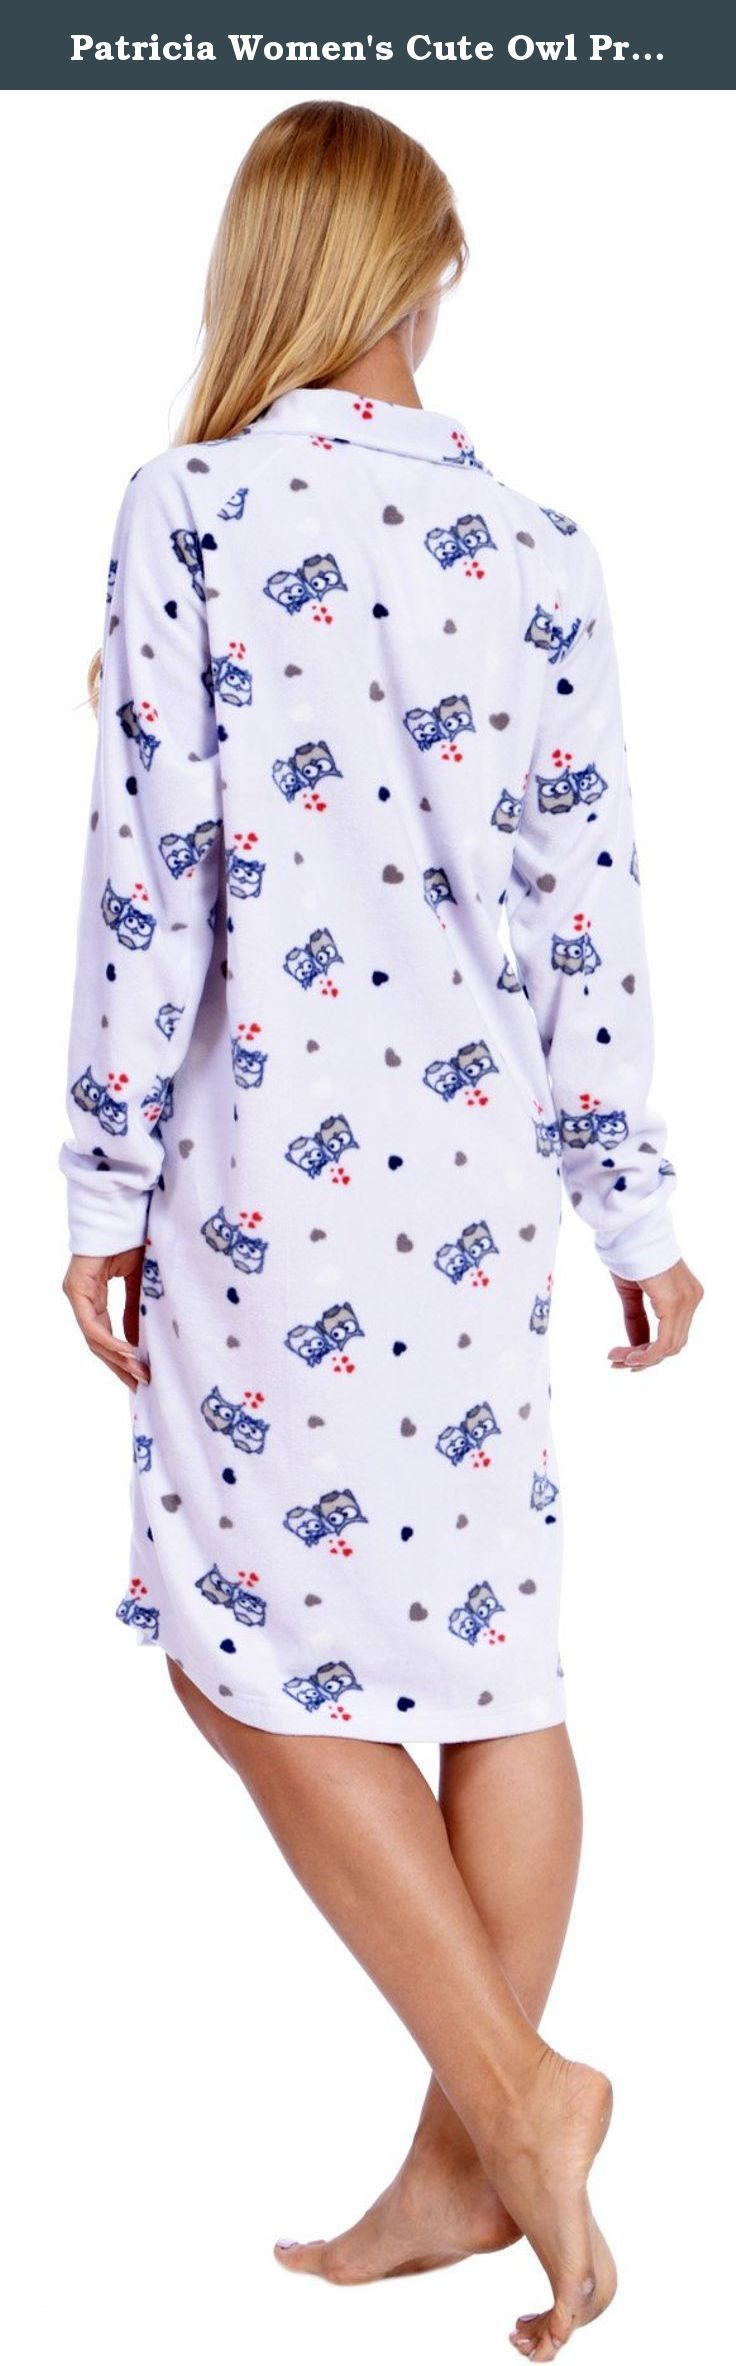 "Patricia Women's Cute Owl Print Polar Fleece Nightgown PJ Lounger with Pockets (L, Lavender Owl Love). Soft beautiful 42"" Collared Lounger features the adorable Owl Love Print with 3/4 Zip down and Two side-seam pockets. Get comfortable with this durable relaxed fitting long sleeve sleepshirt with comfort fit elastic wrist cuffs. Well designed with premium quality ultra soft, luxurious plush material. Well made with double-stitched reinforced seams for long lasting durability. Features..."